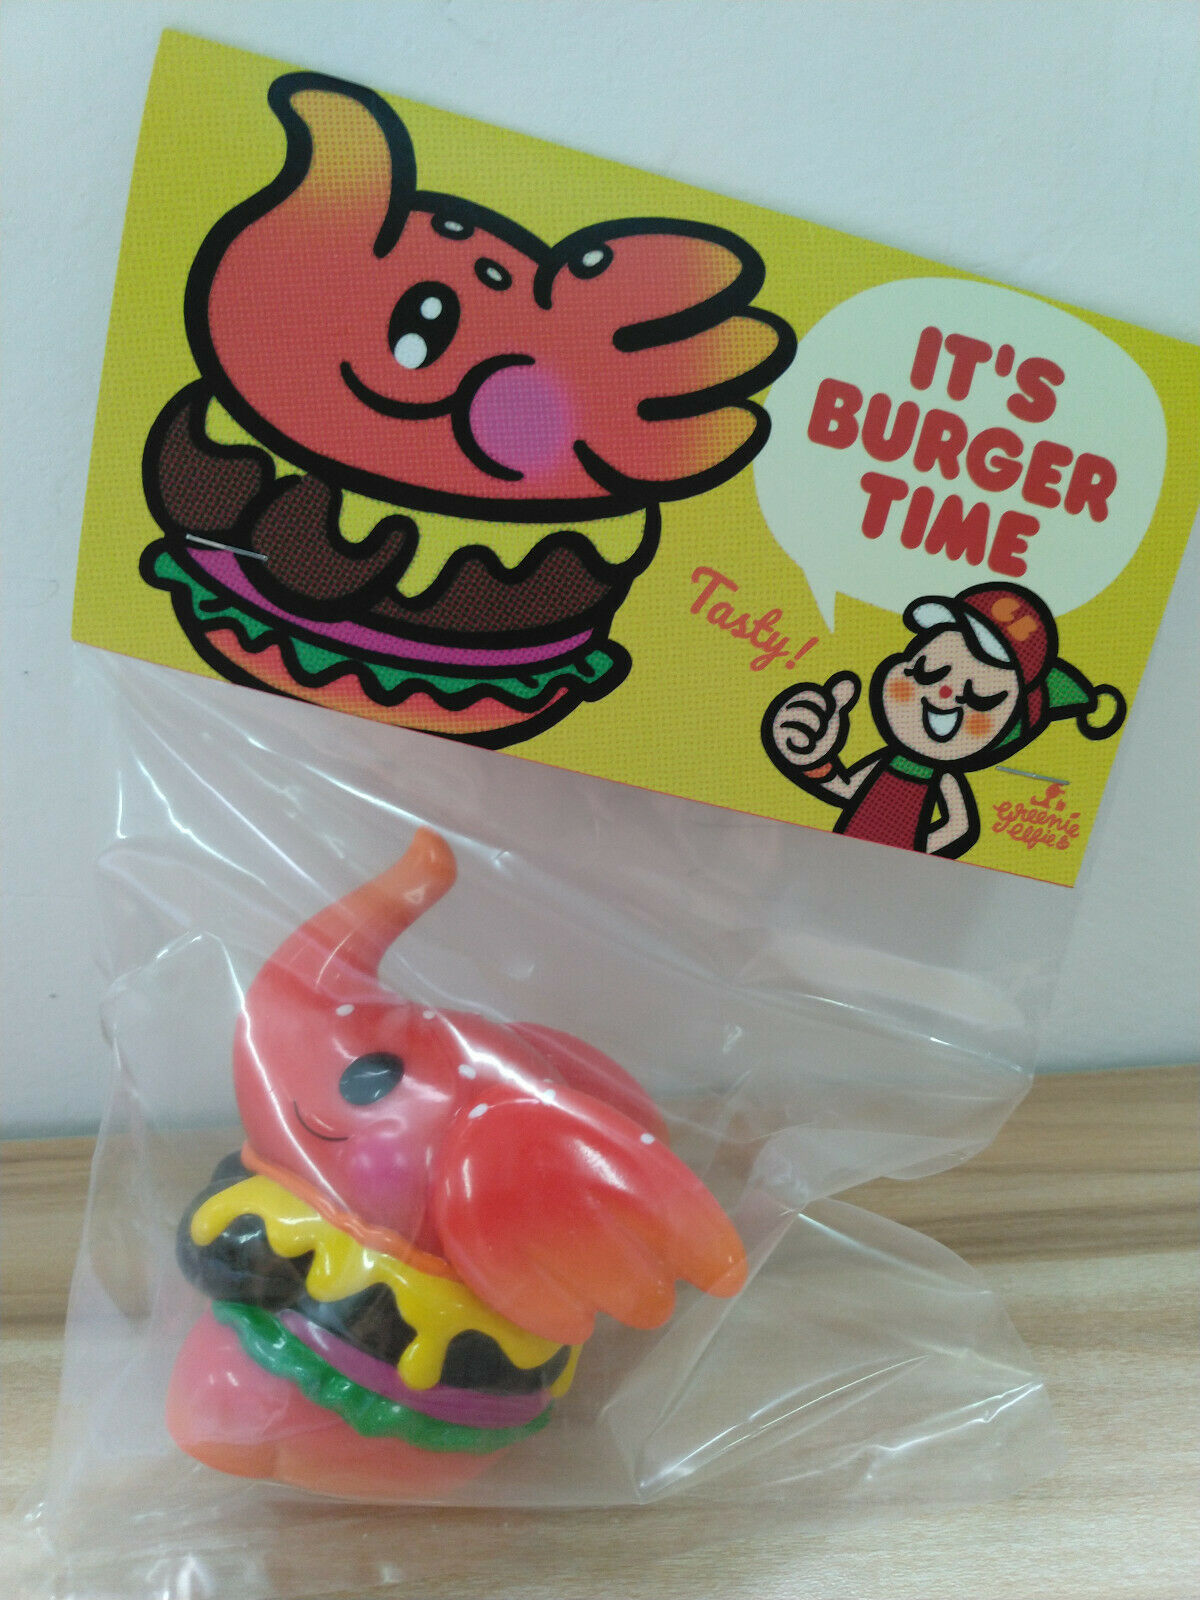 Unbox verdeie & Elfie Elephant Spicy Burger Vinyl Figure TTE